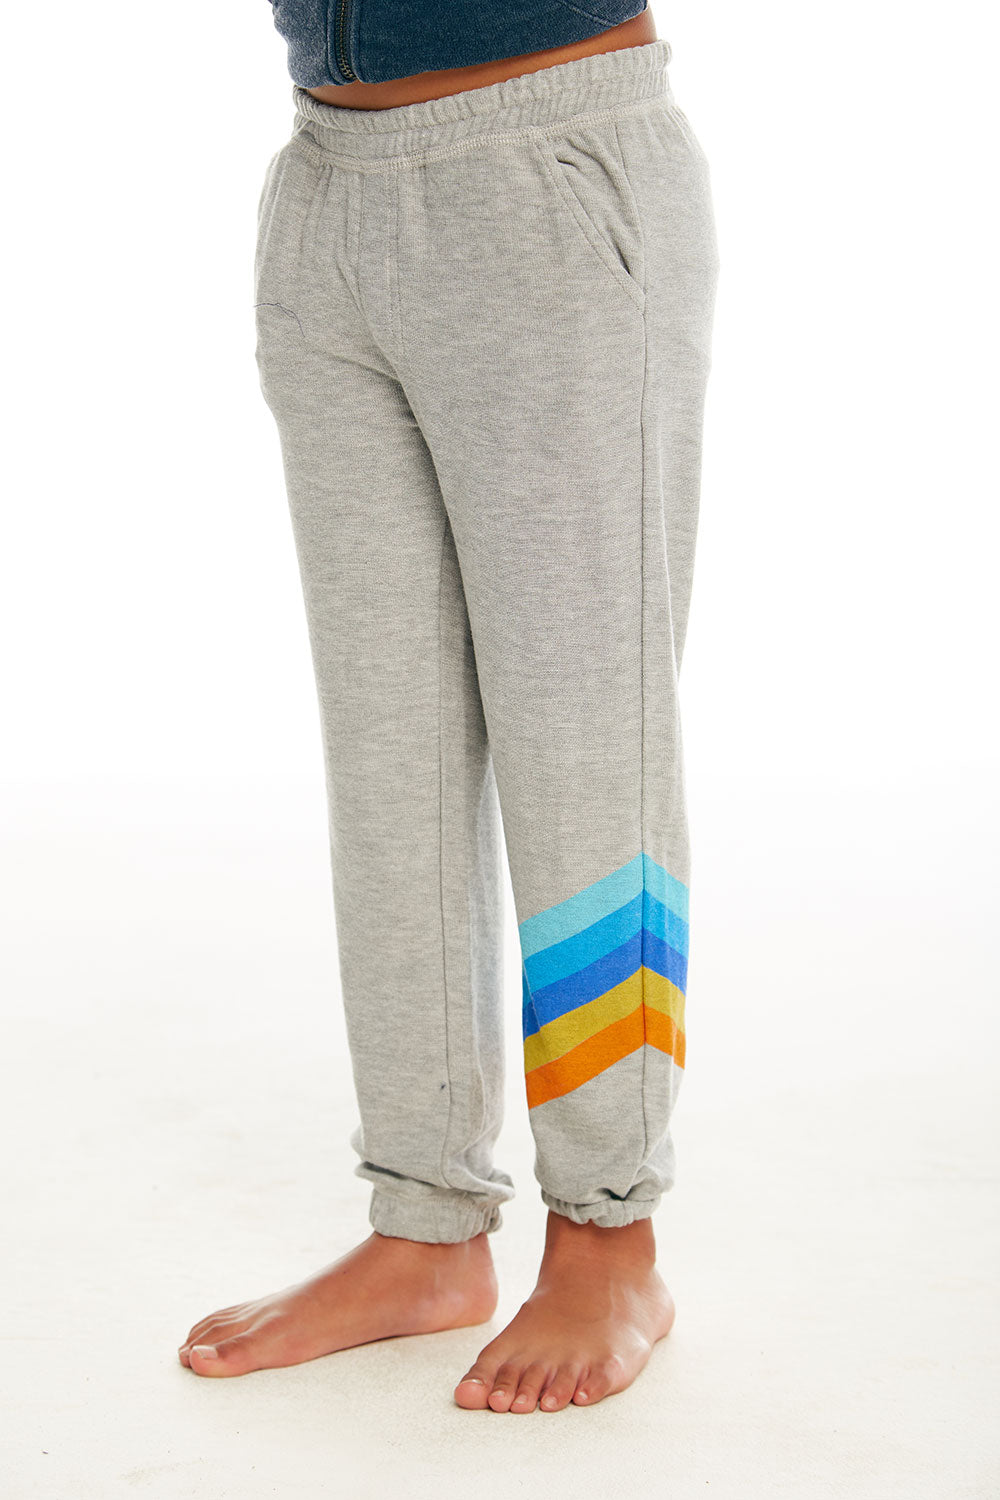 Surf Stripes Pants BOYS chaserbrand4.myshopify.com